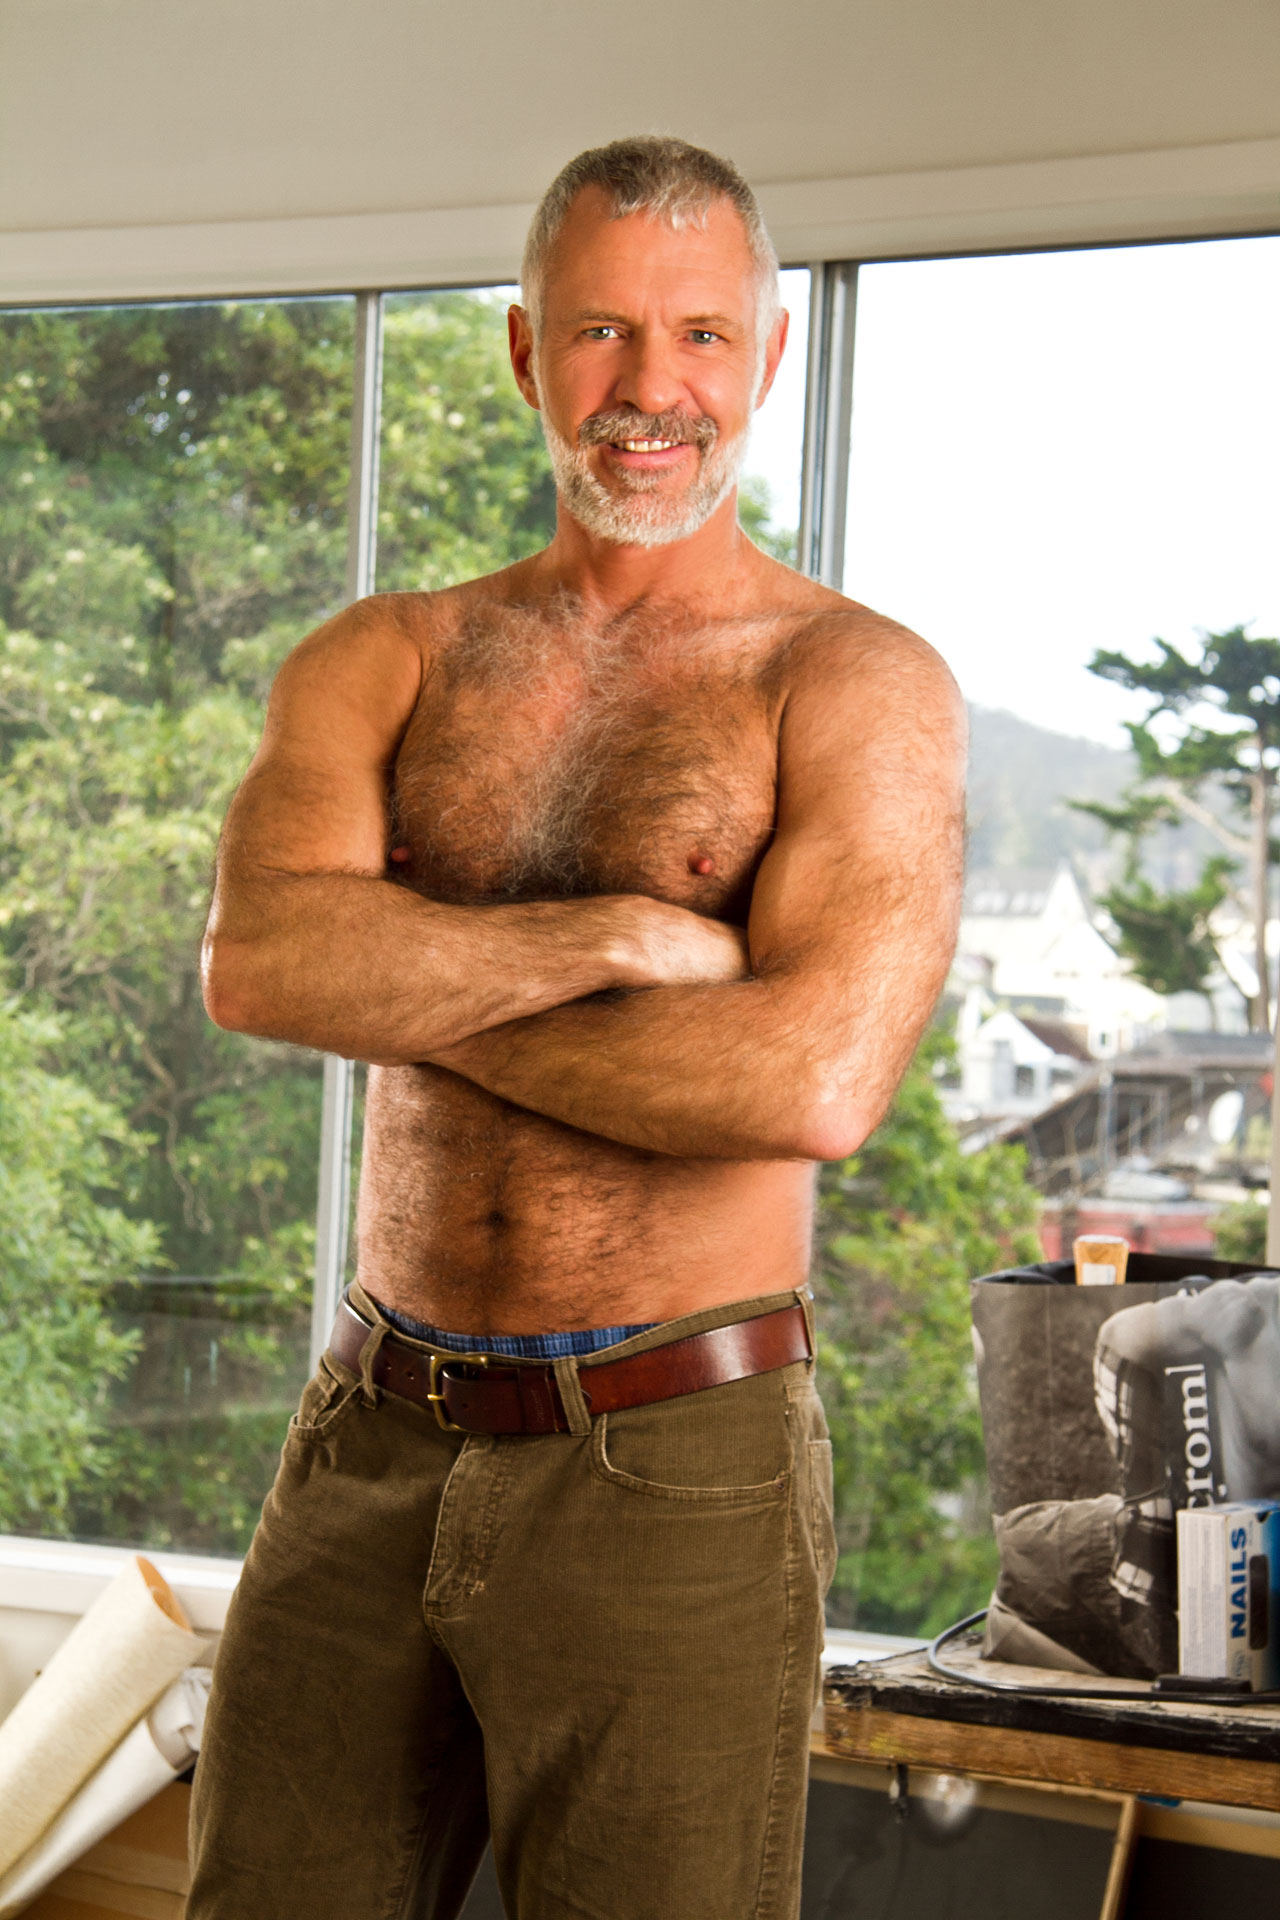 silverdaddies gay porn Free Old gay grandpa porno photos first time Young Isaac arrived porn tube  video online.